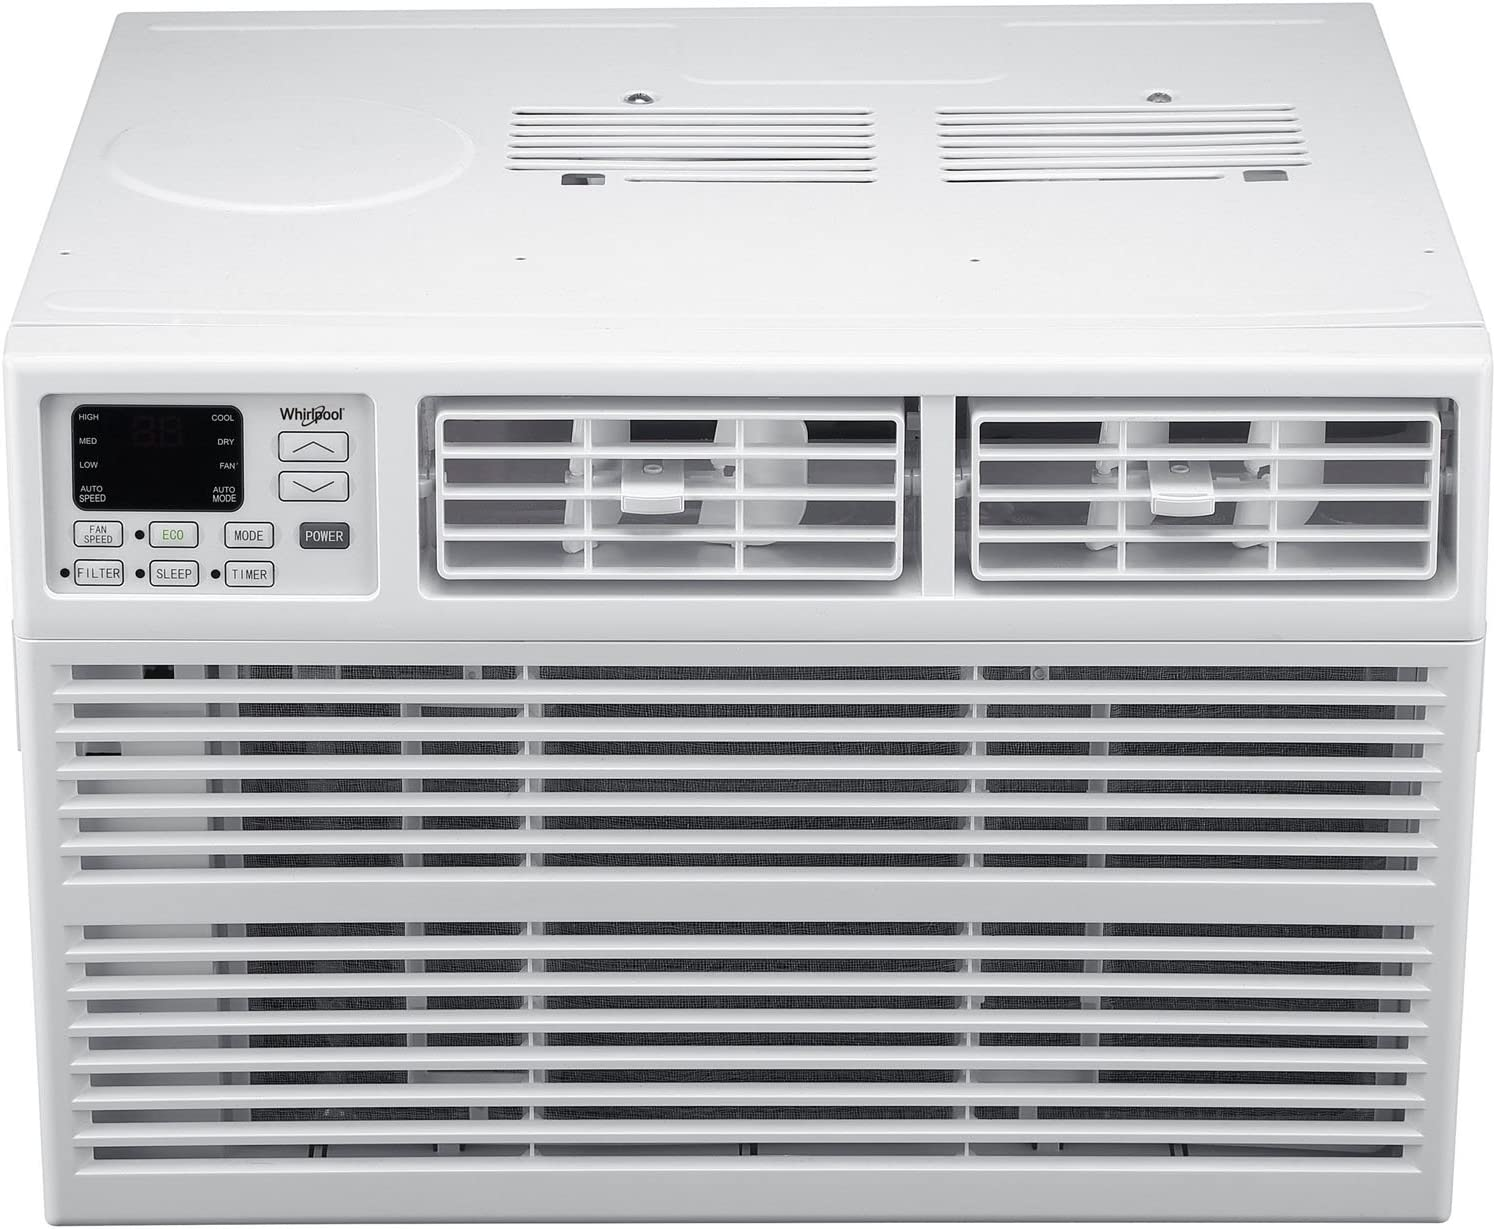 Whirlpool Energy Star 24,000 BTU 230V Window-Mounted Air Conditioner with Remote Control